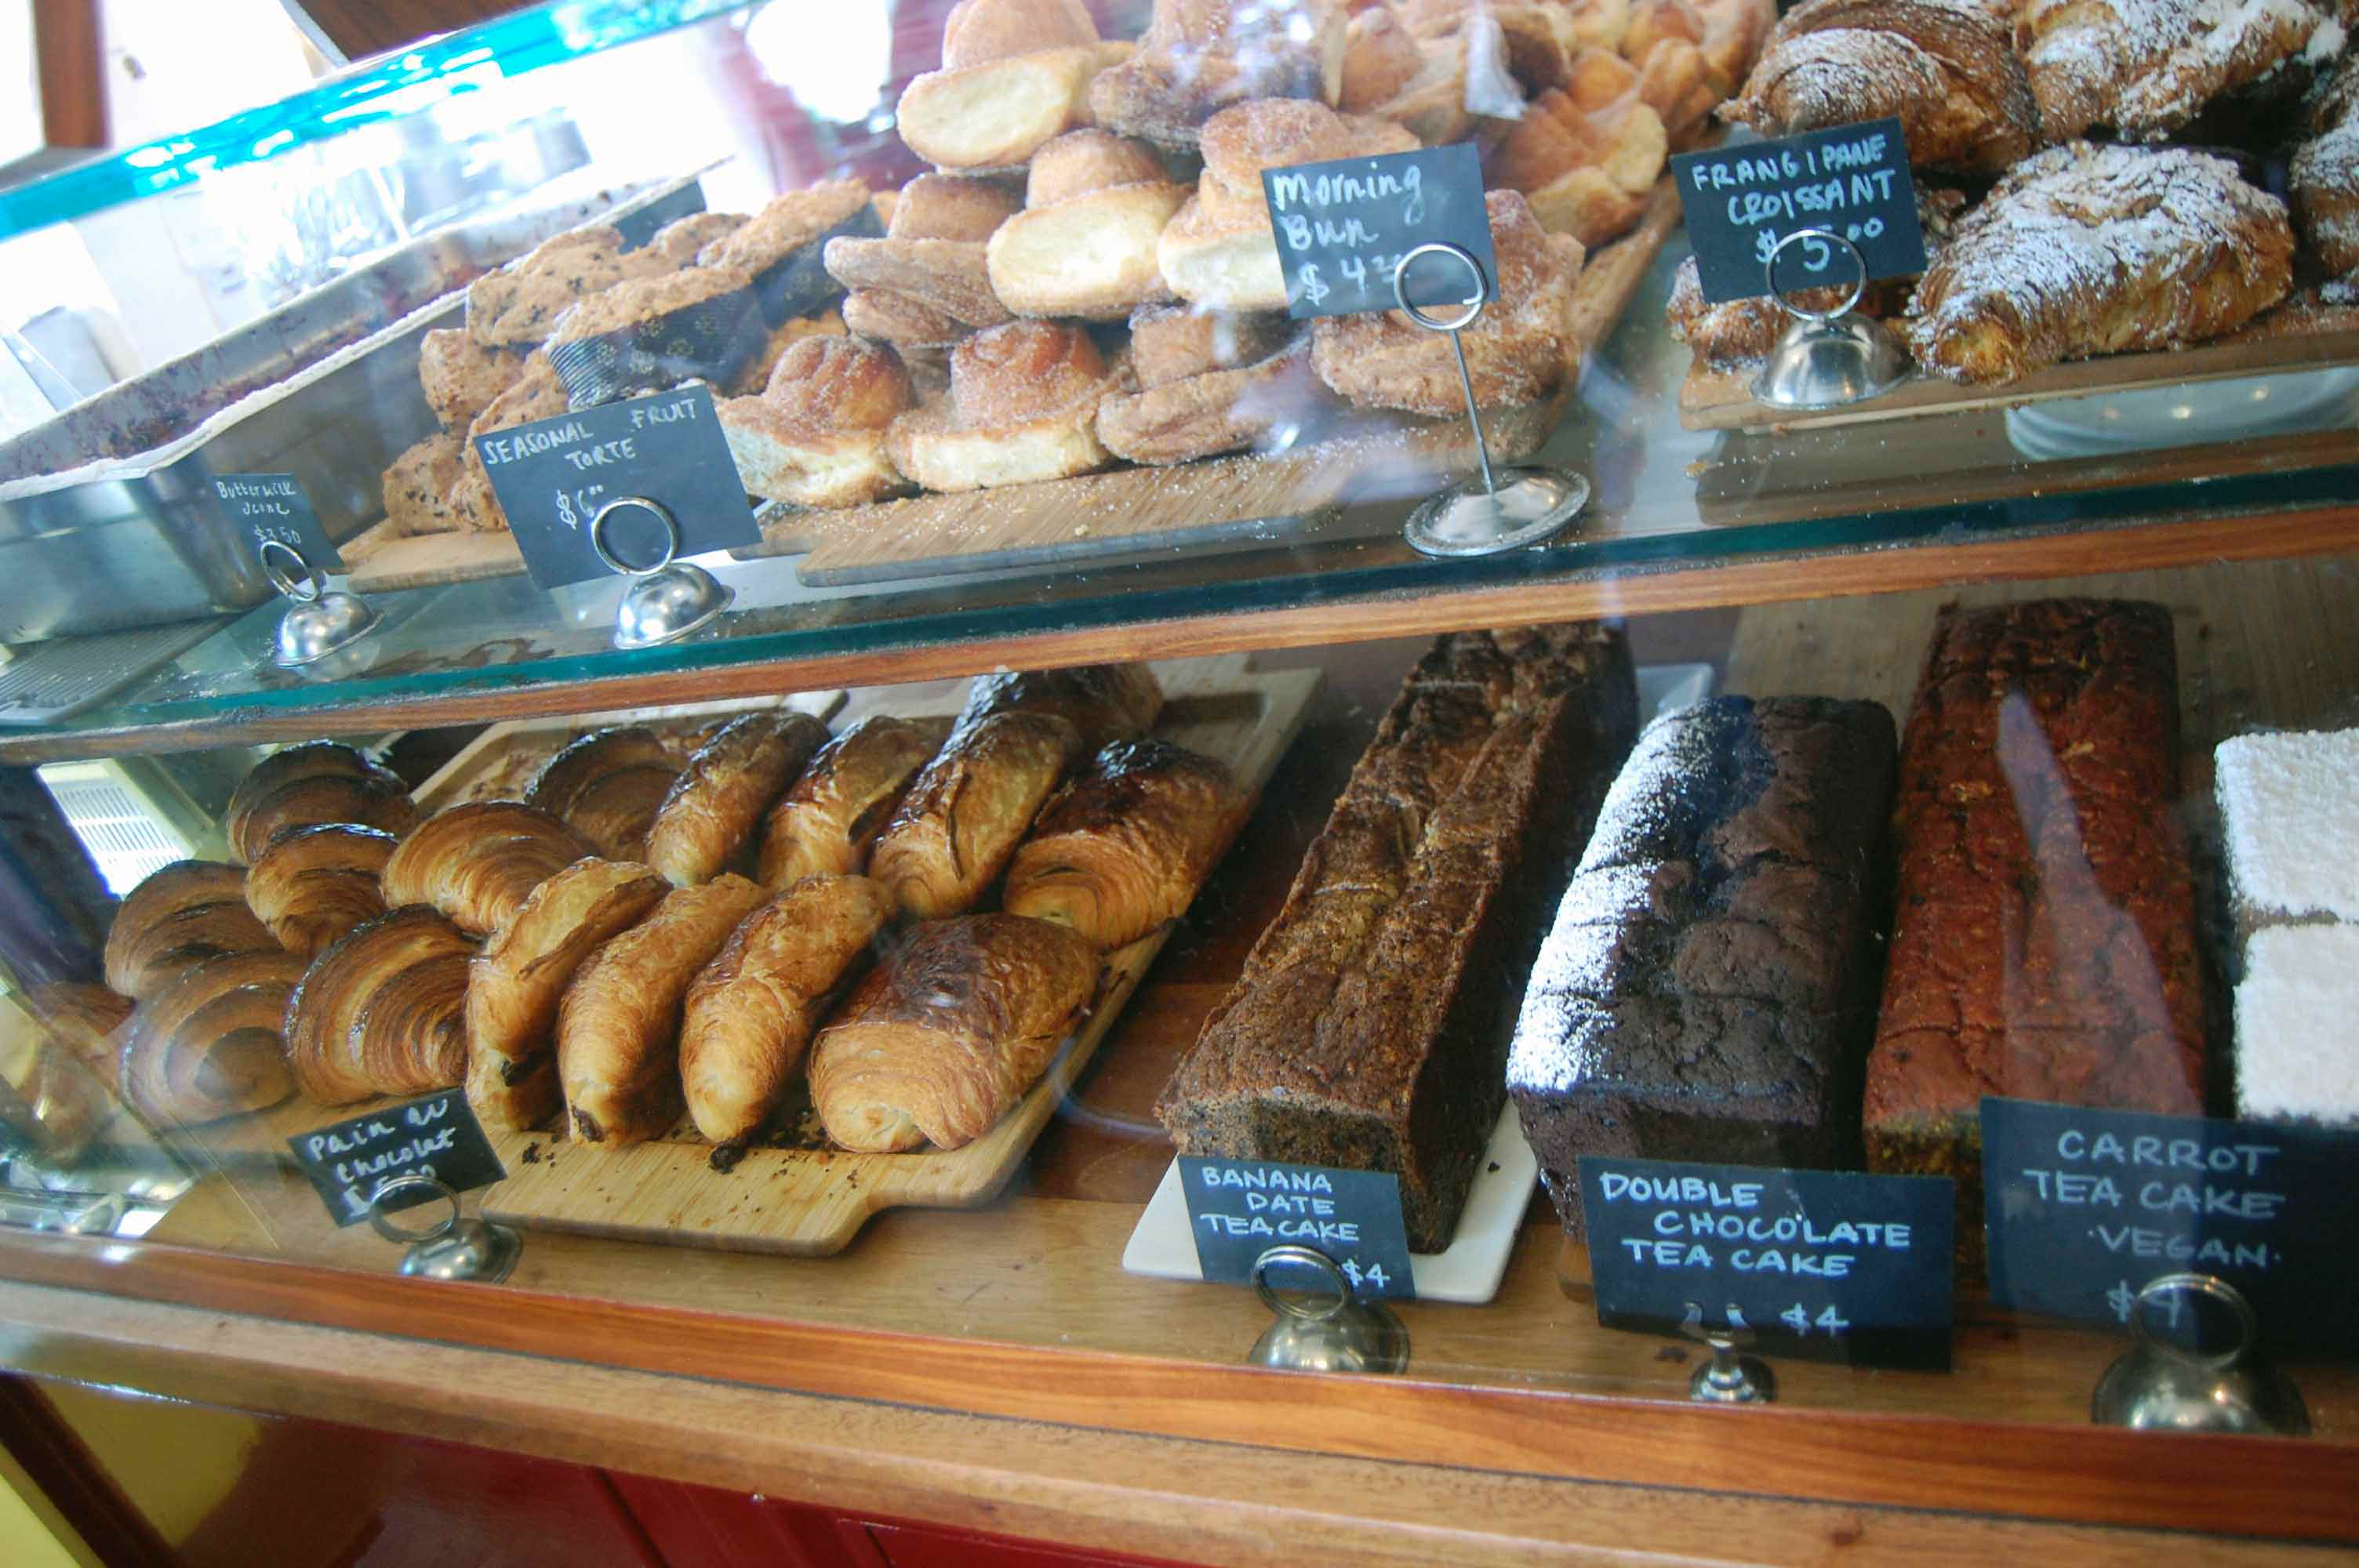 tartine bakery - san francisco tourist spots that locals love